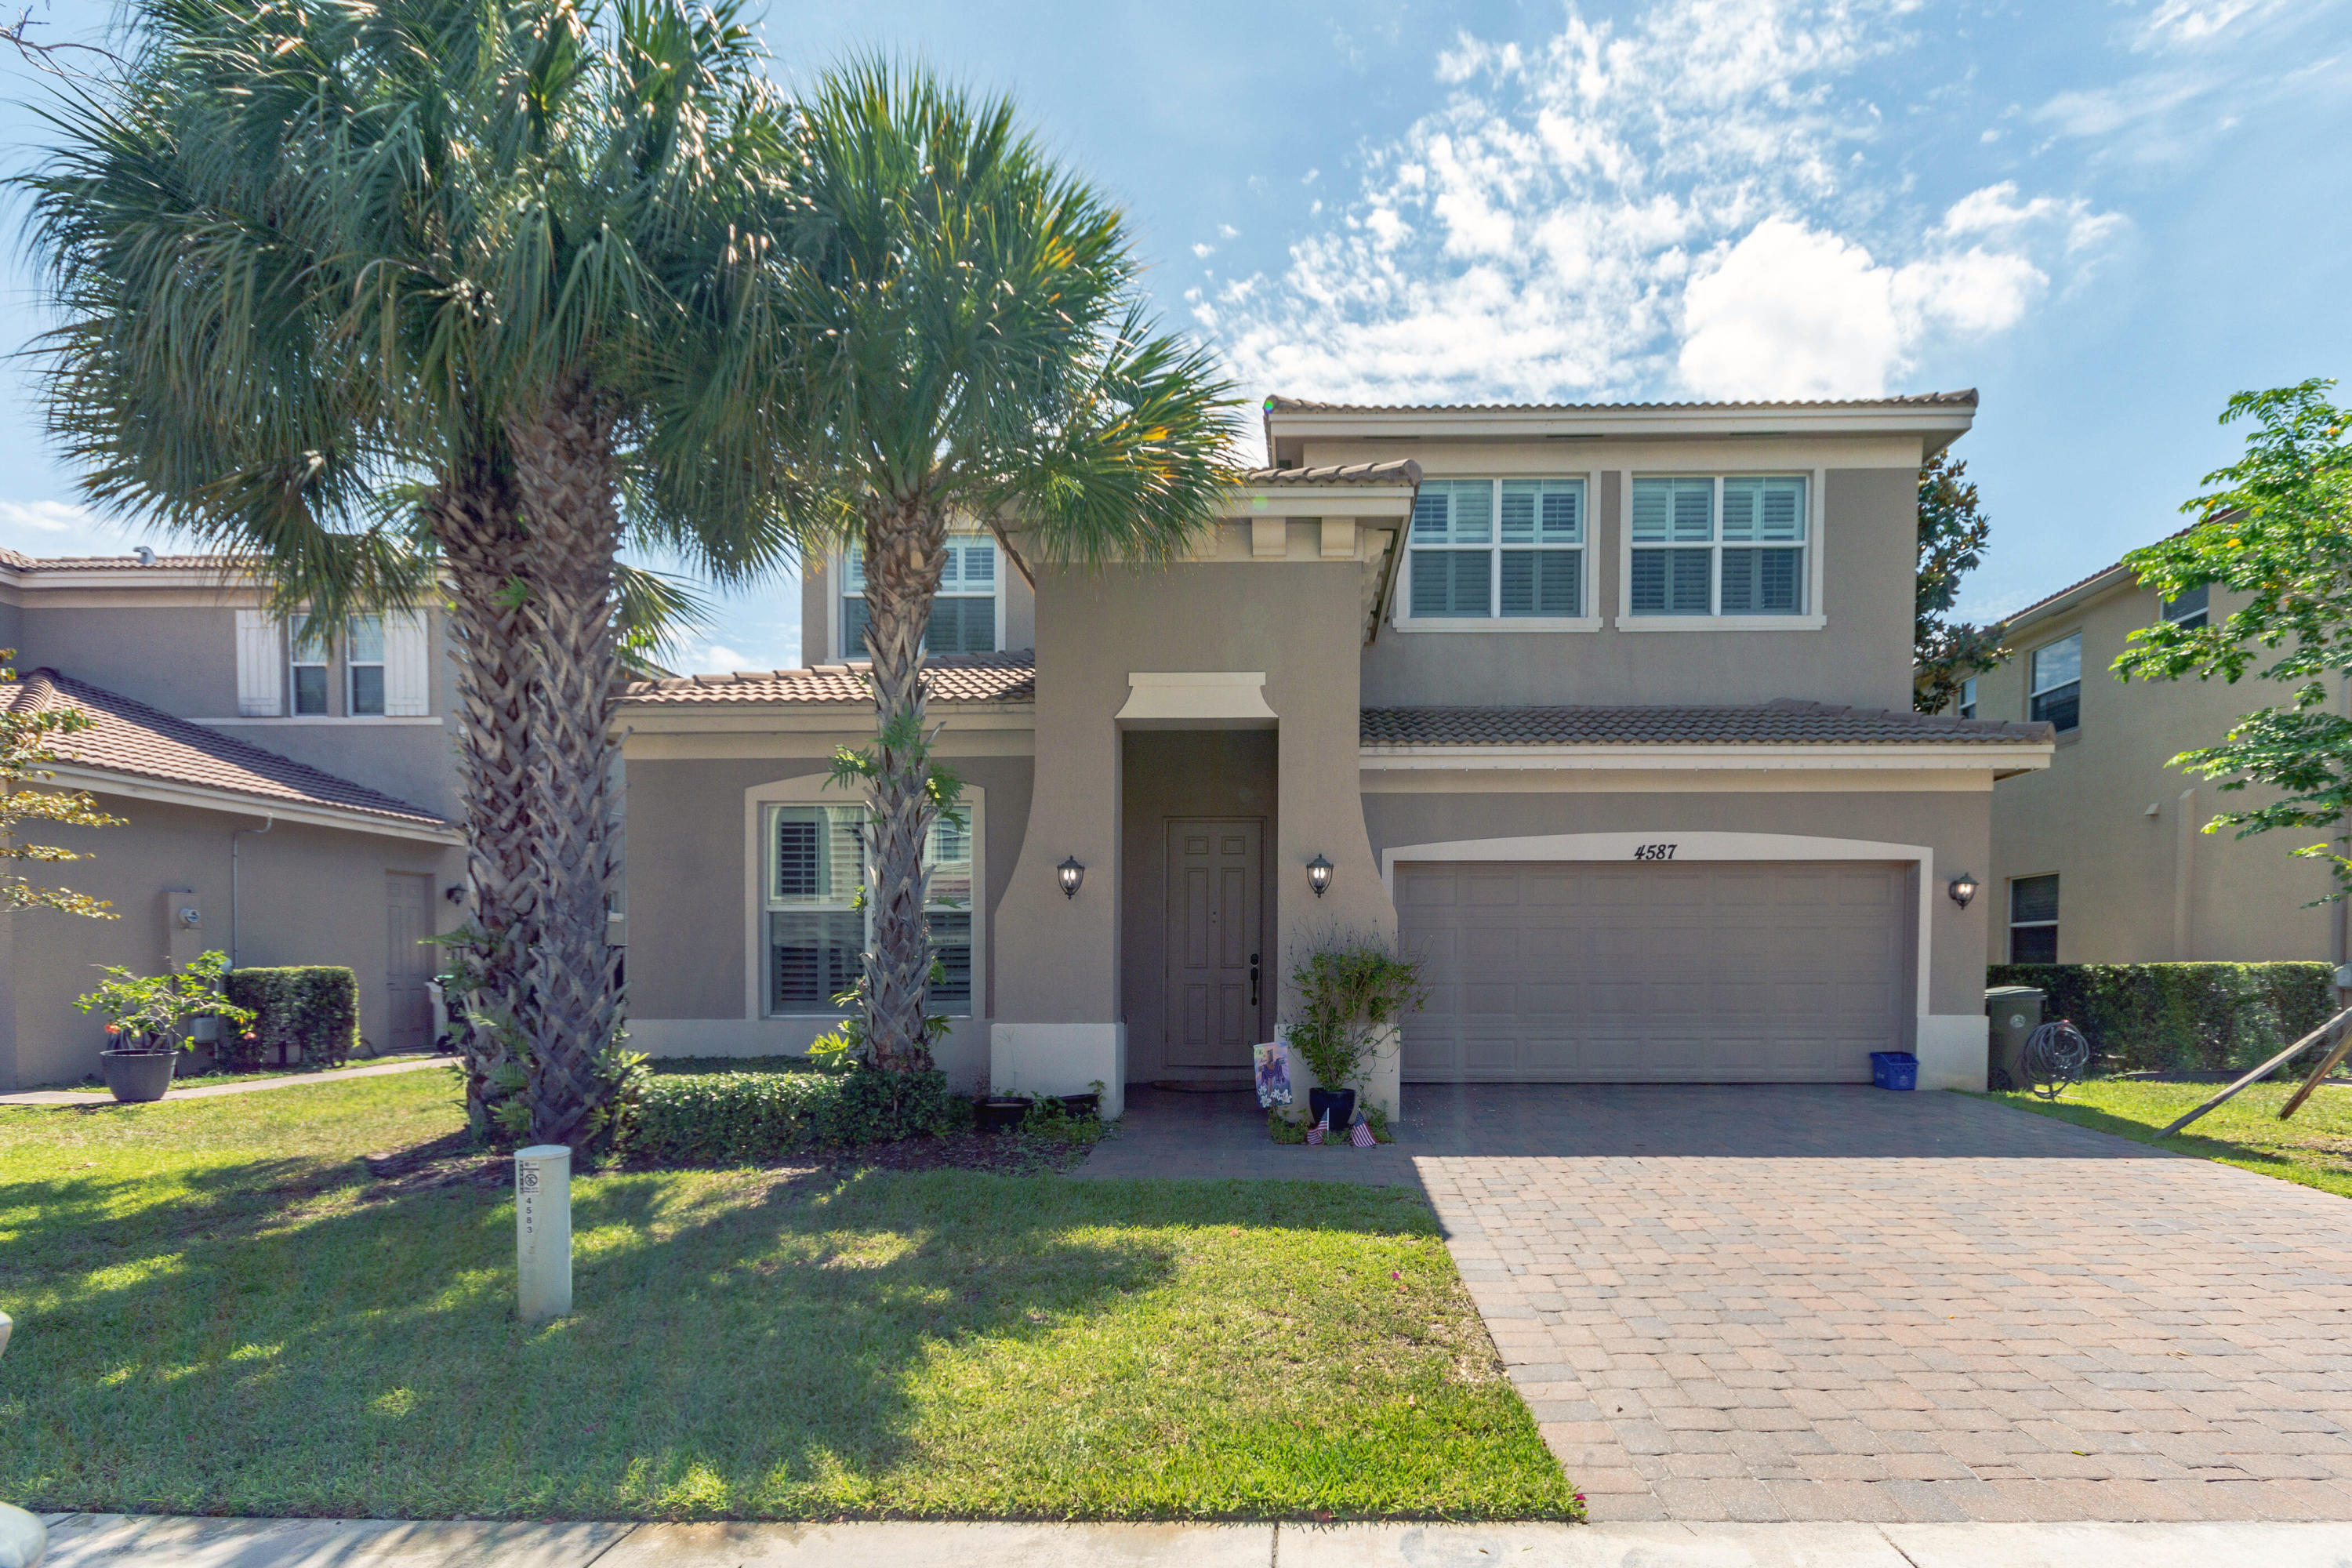 Home for sale in San Mellina Coconut Creek Florida